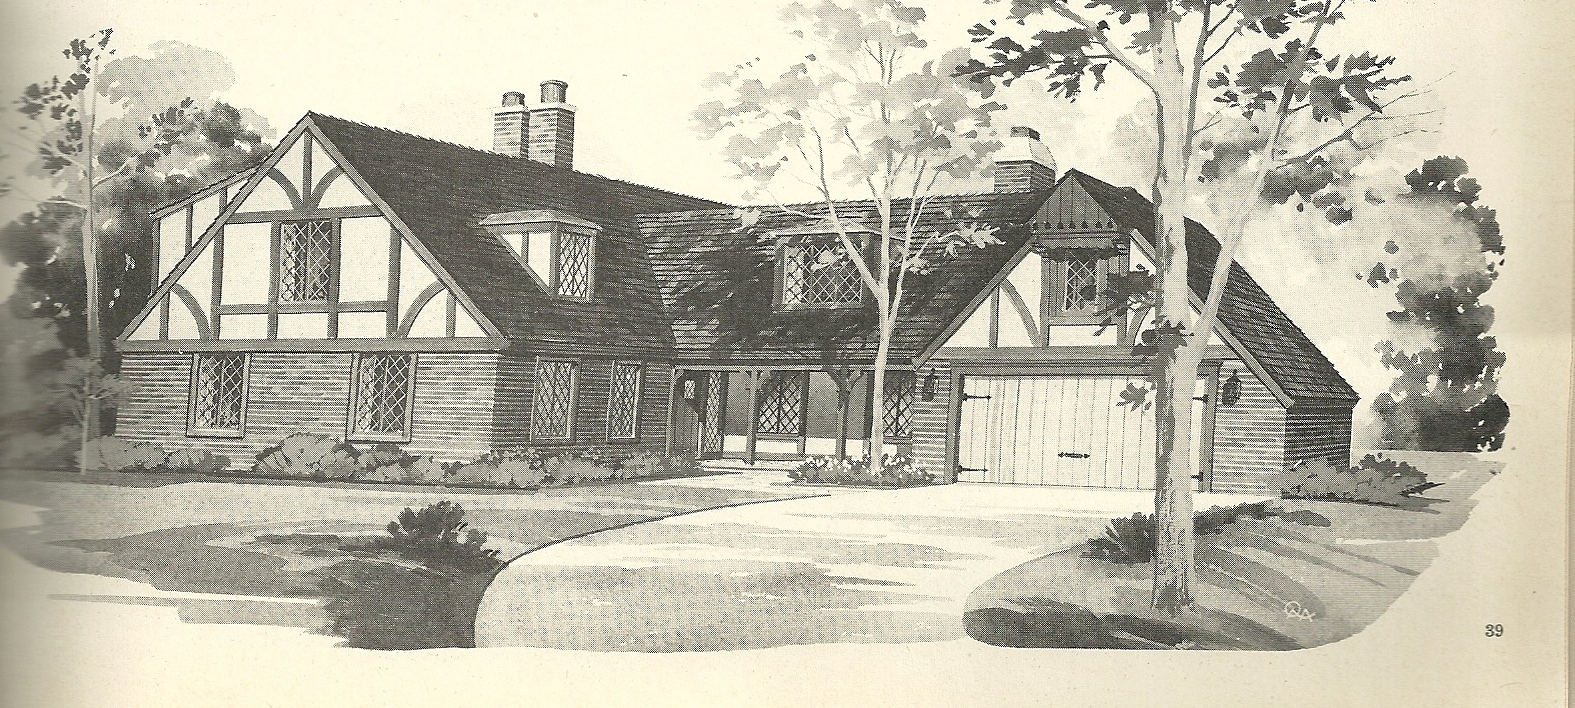 Vintage house plans 2241 antique alter ego for Tudor house plans